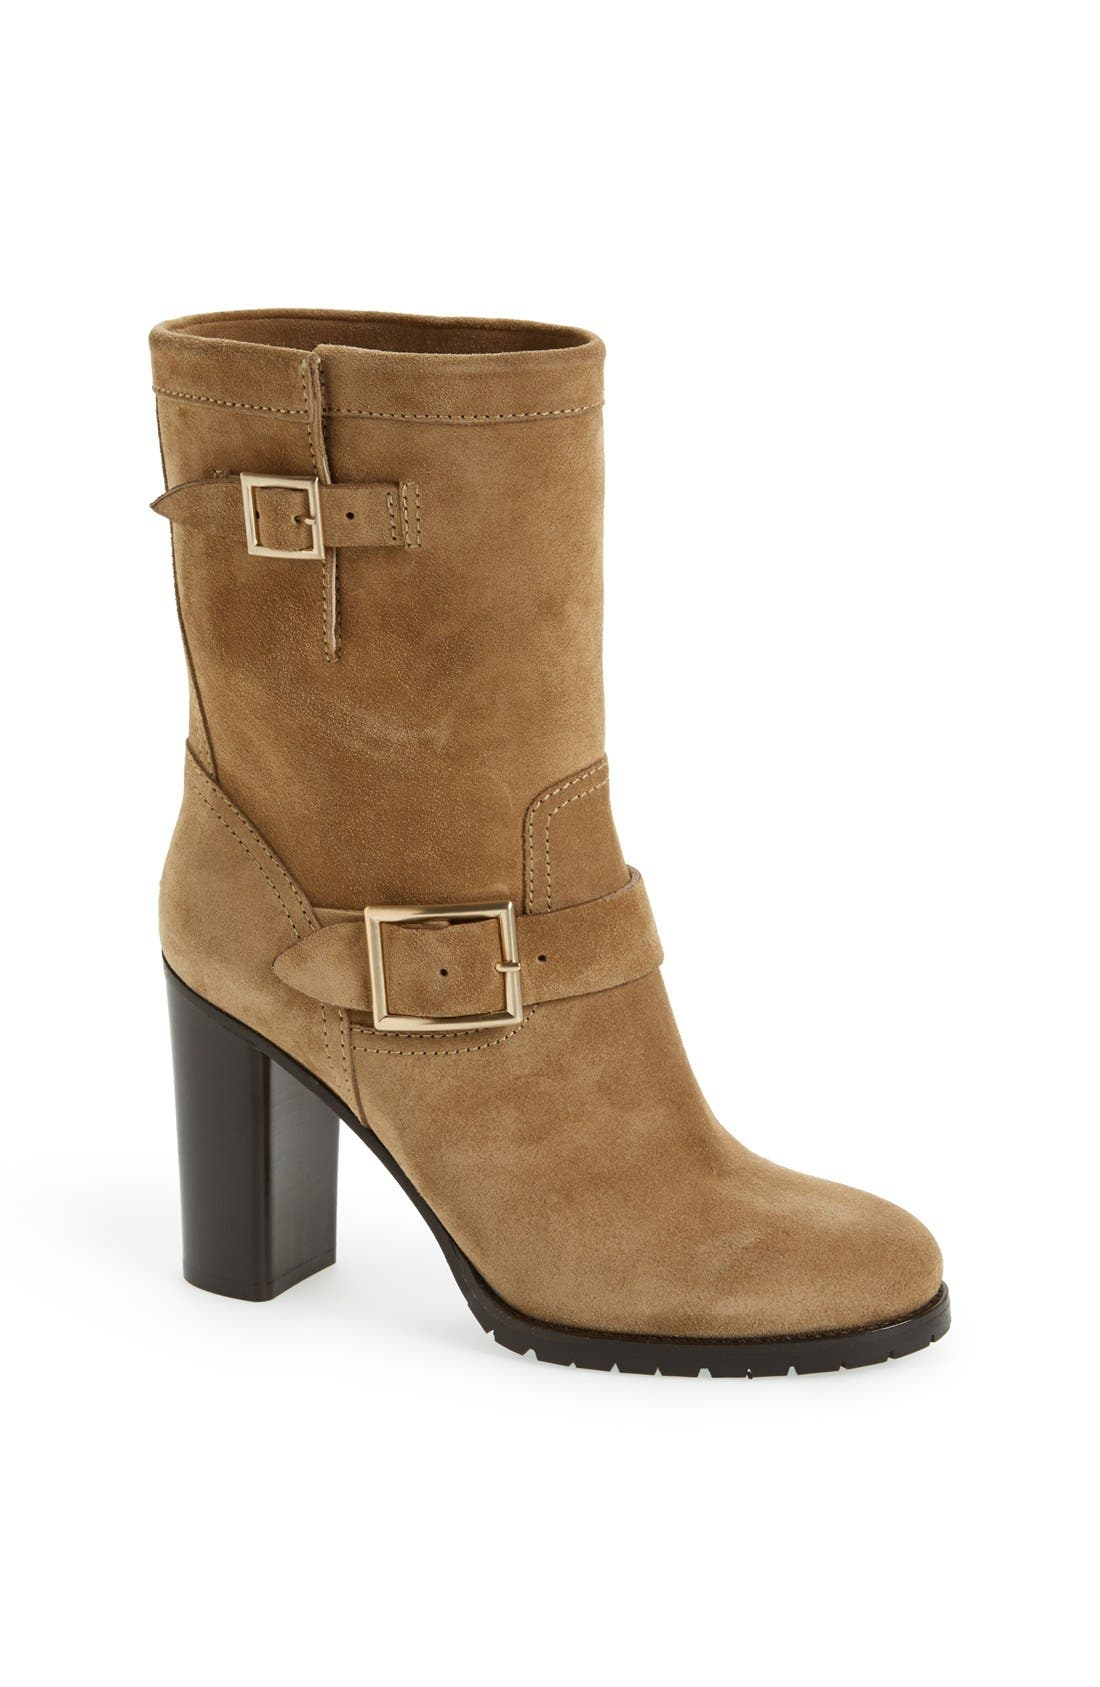 Main Image - Jimmy Choo 'Dart' Suede Boot